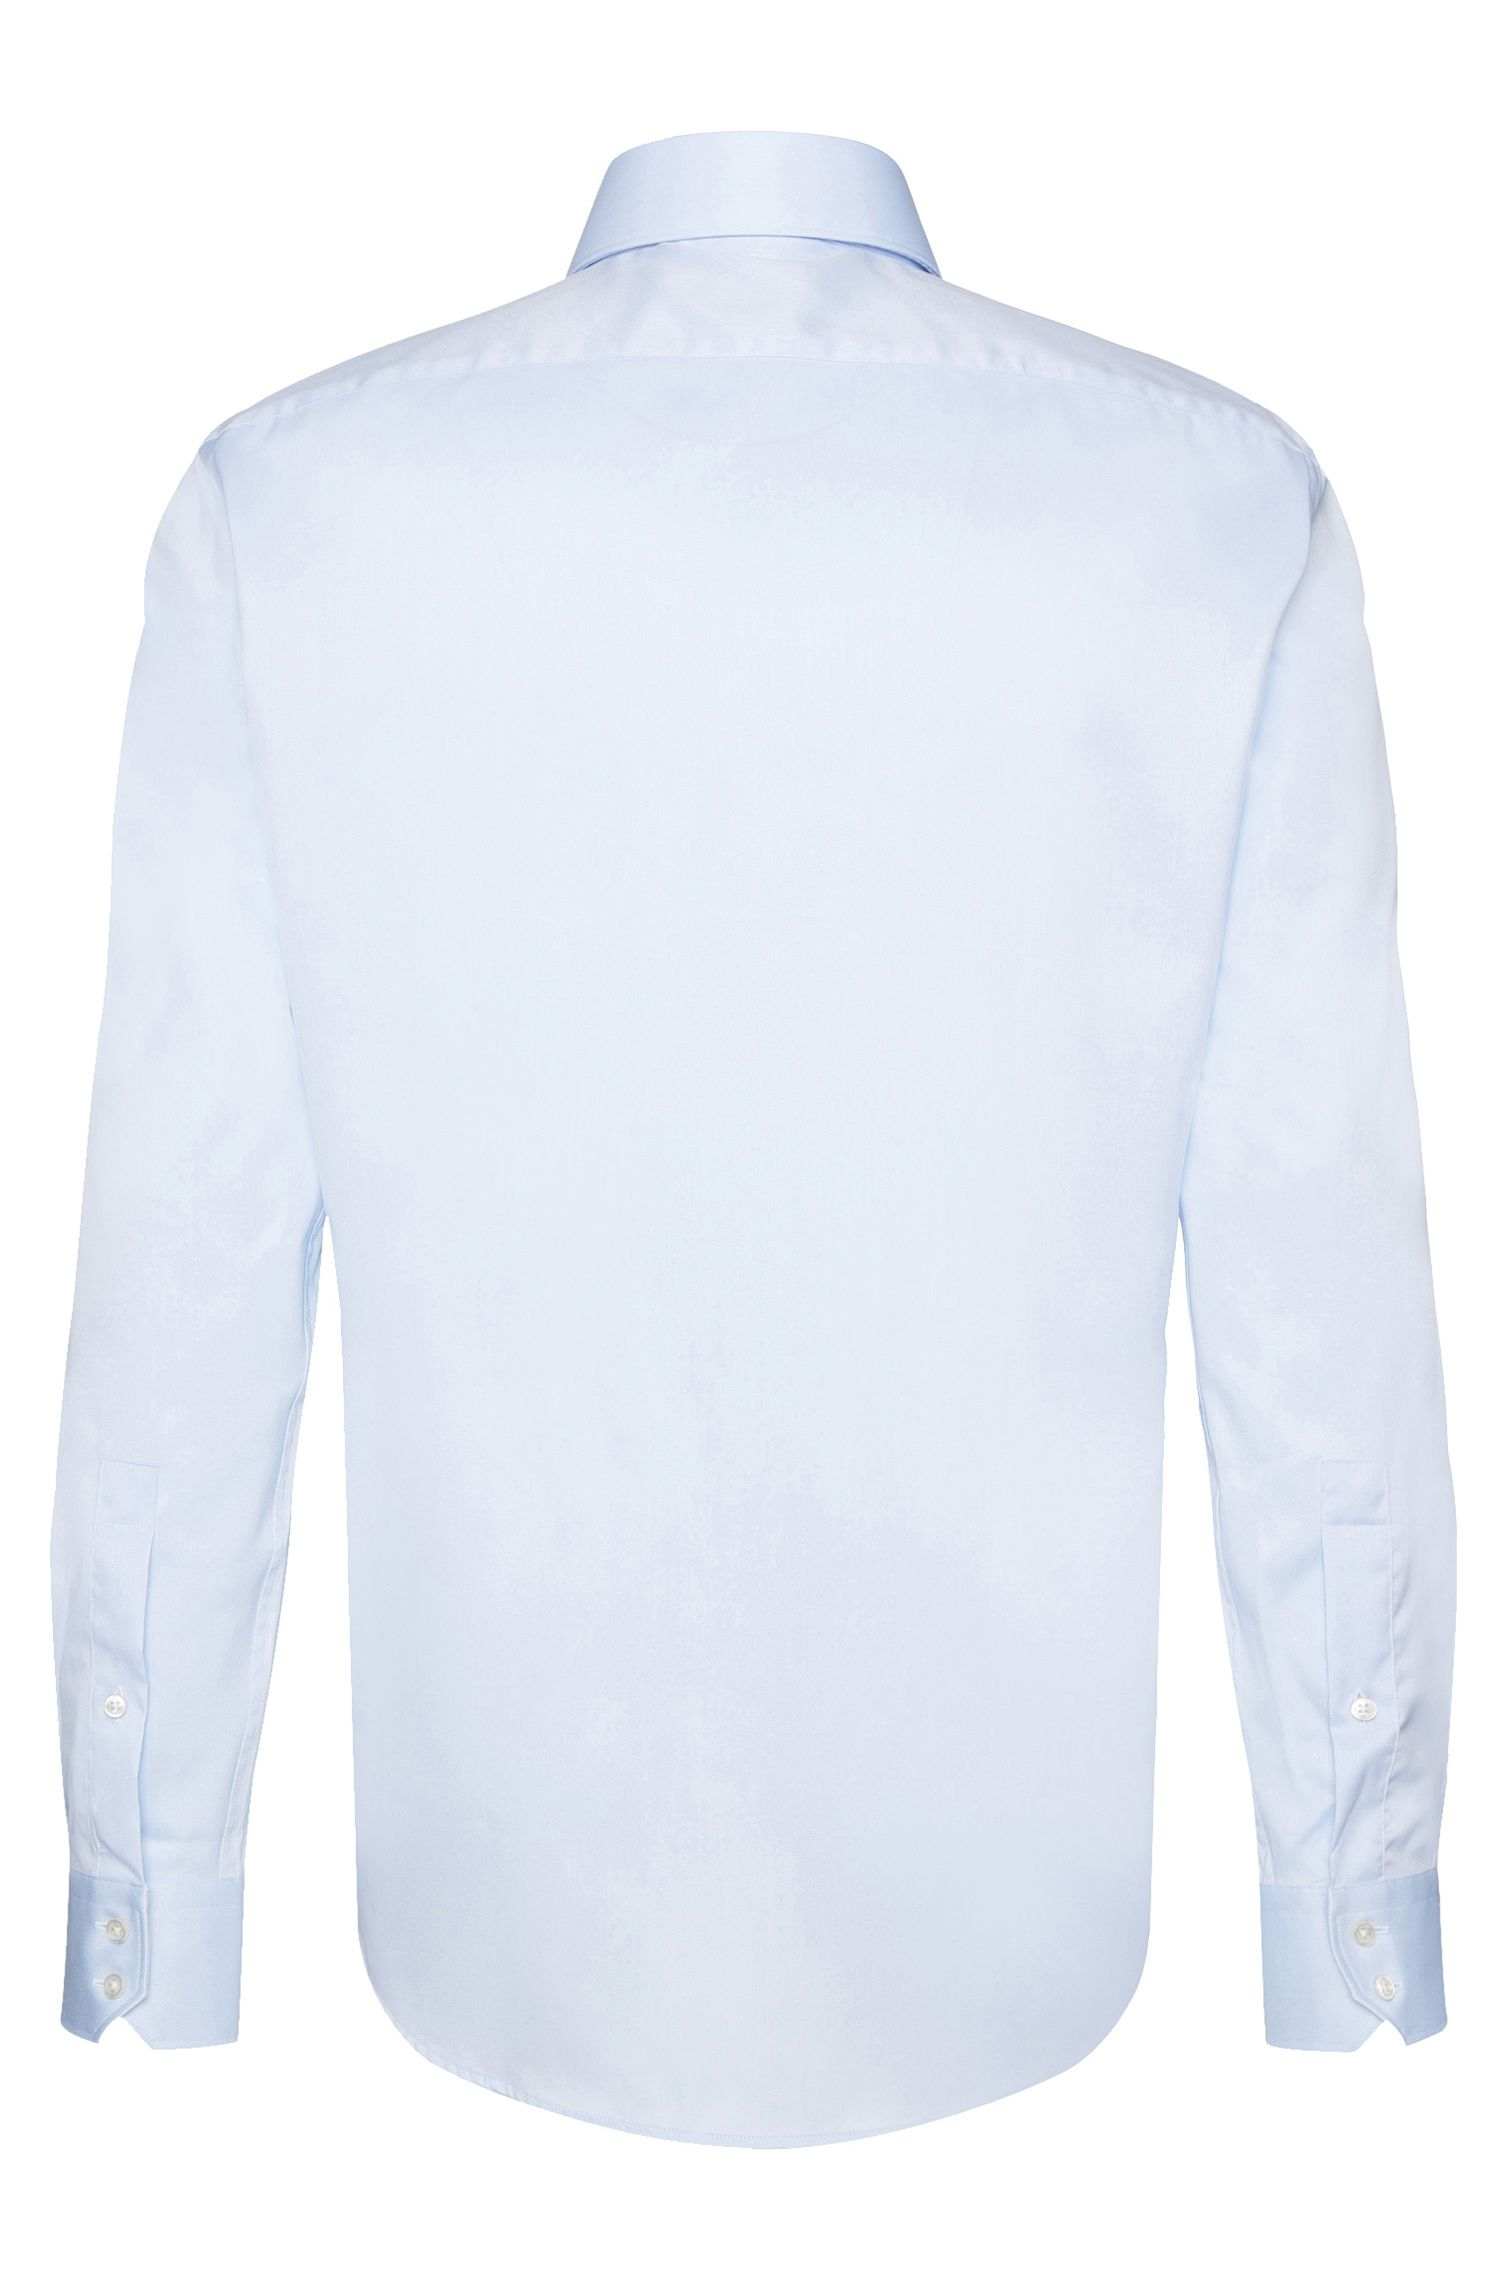 Regular-fit shirt in pure cotton